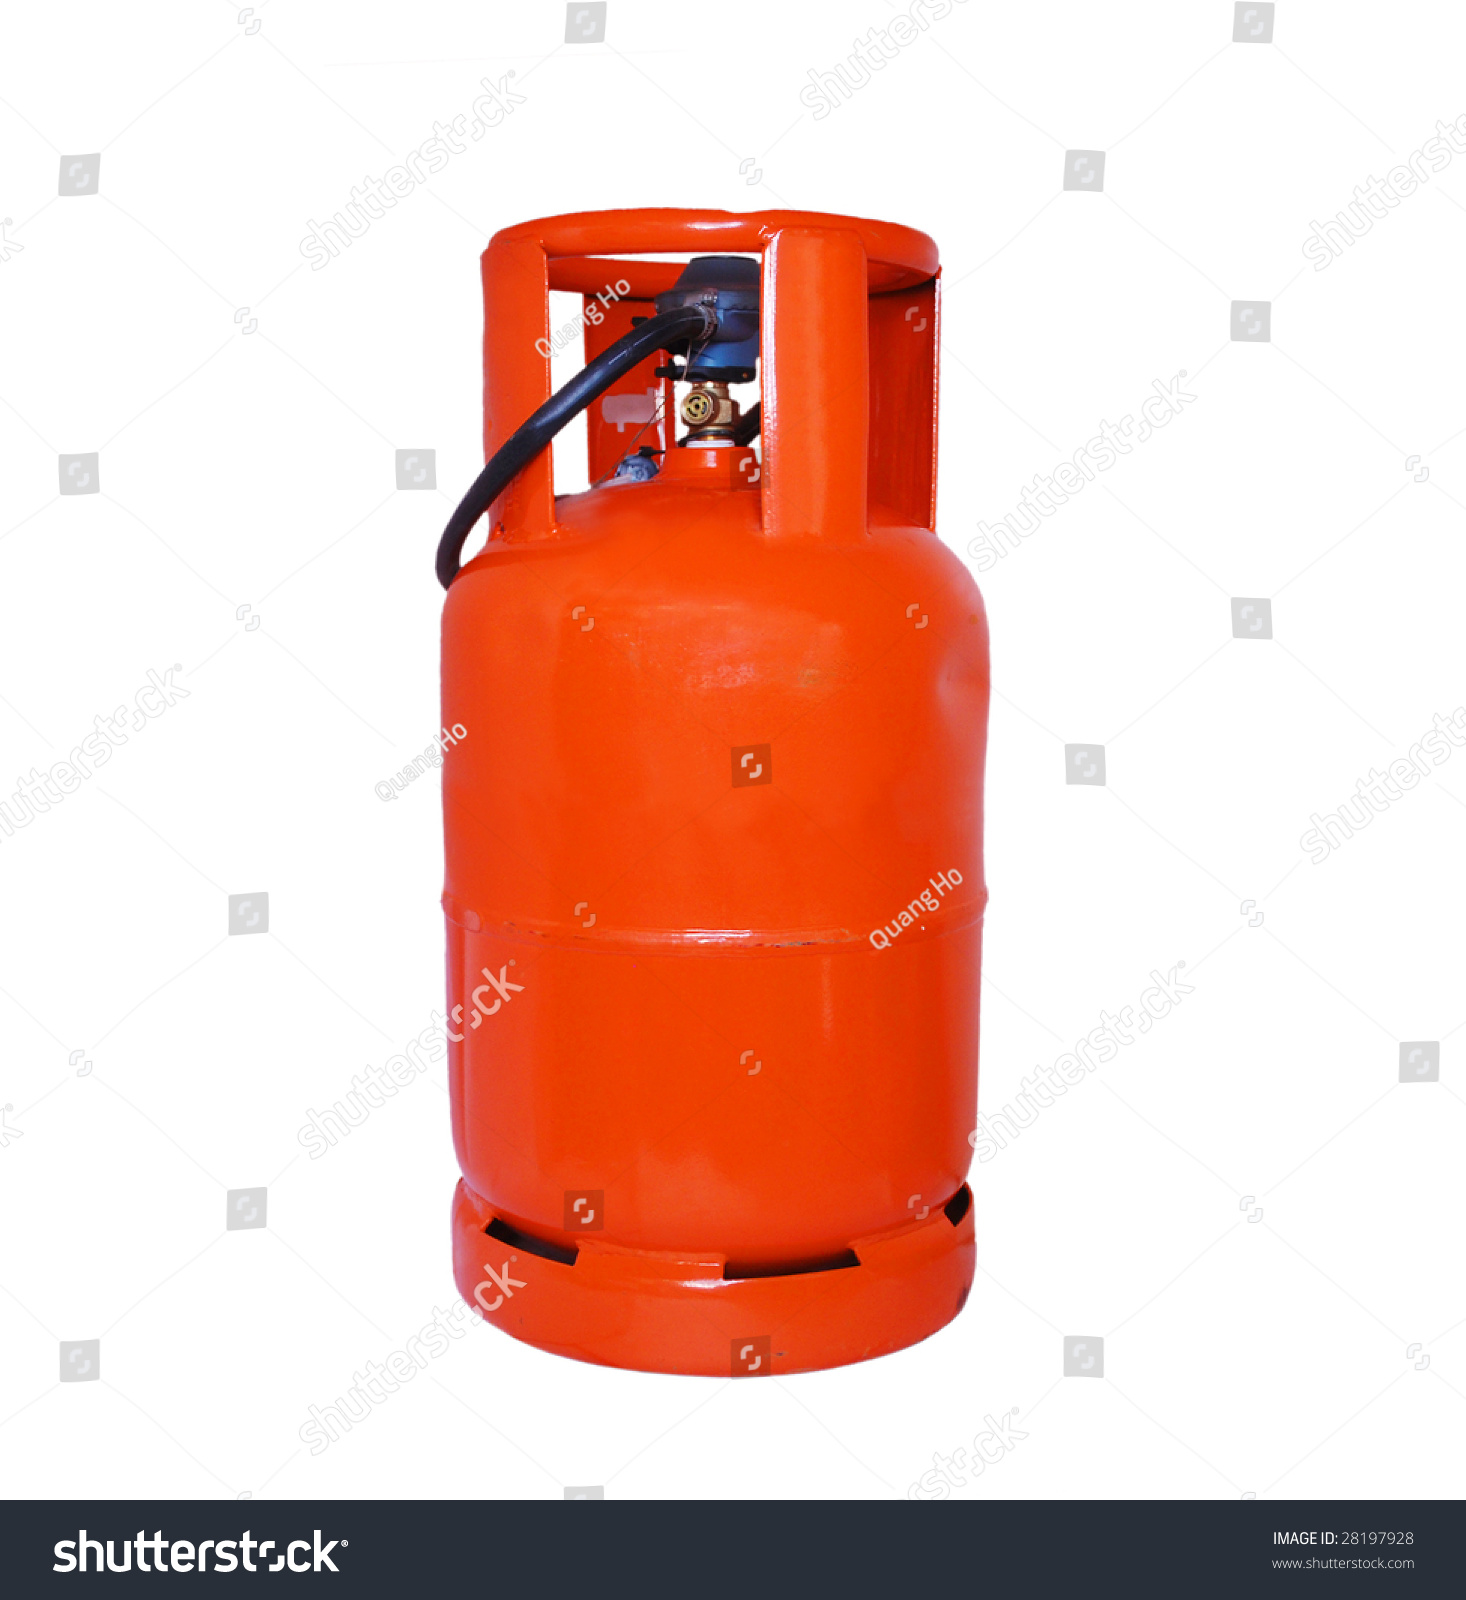 Can I Fill Propane Tank With Natural Gas